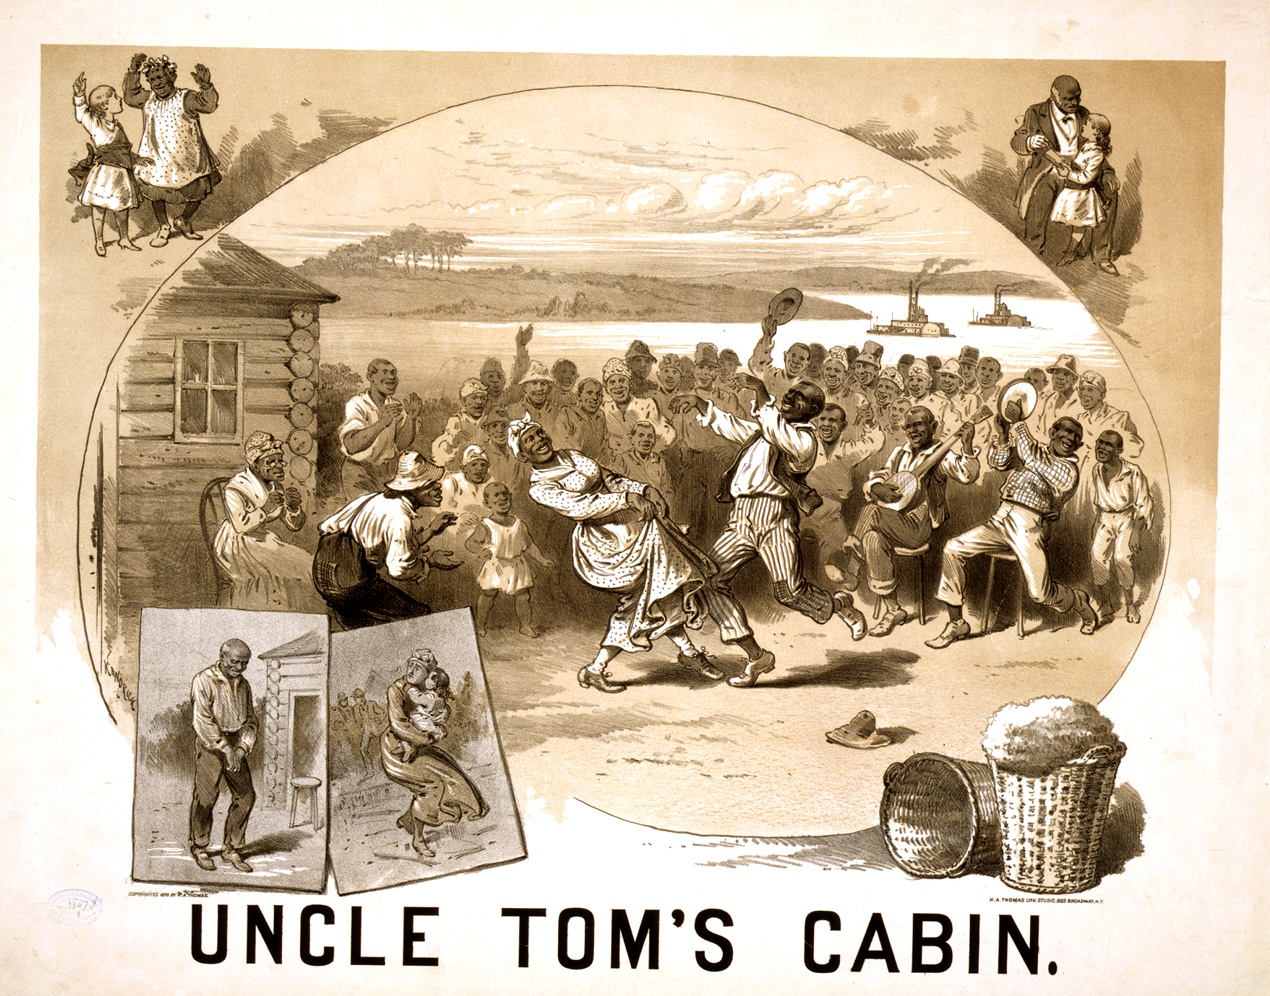 how did uncle toms cabin lead to the civil war